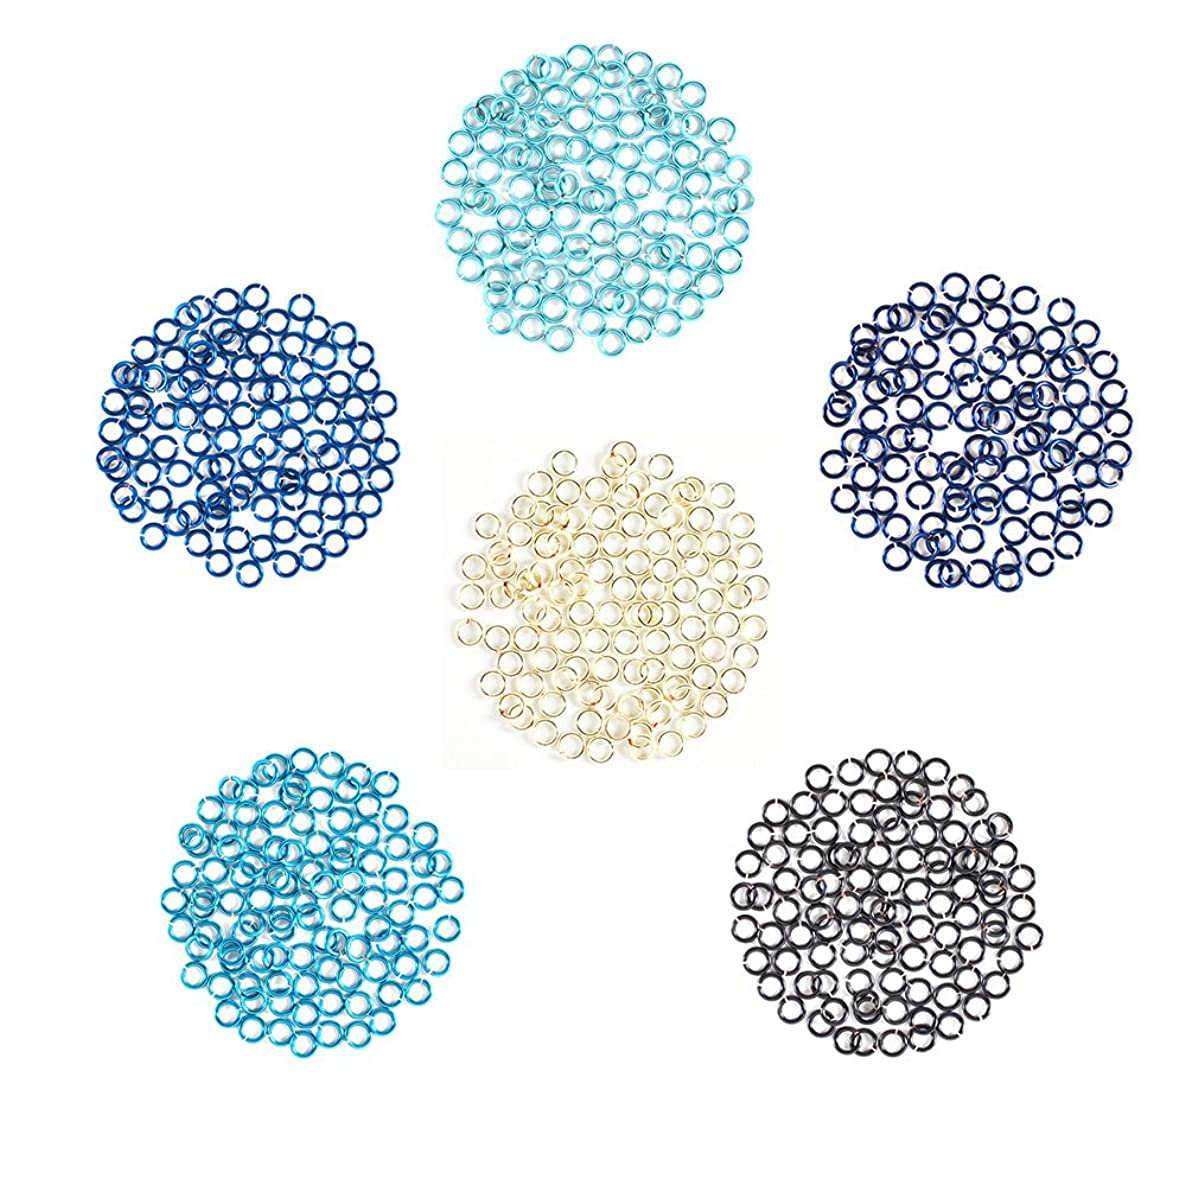 Ice and Moon - Enameled Copper Jump Rings – 20 Gauge – 5.5mm ID - 600 Rings - Baby Blue, Blue, Blue Steel, Pacific Blue, Peacock Blue, Silver